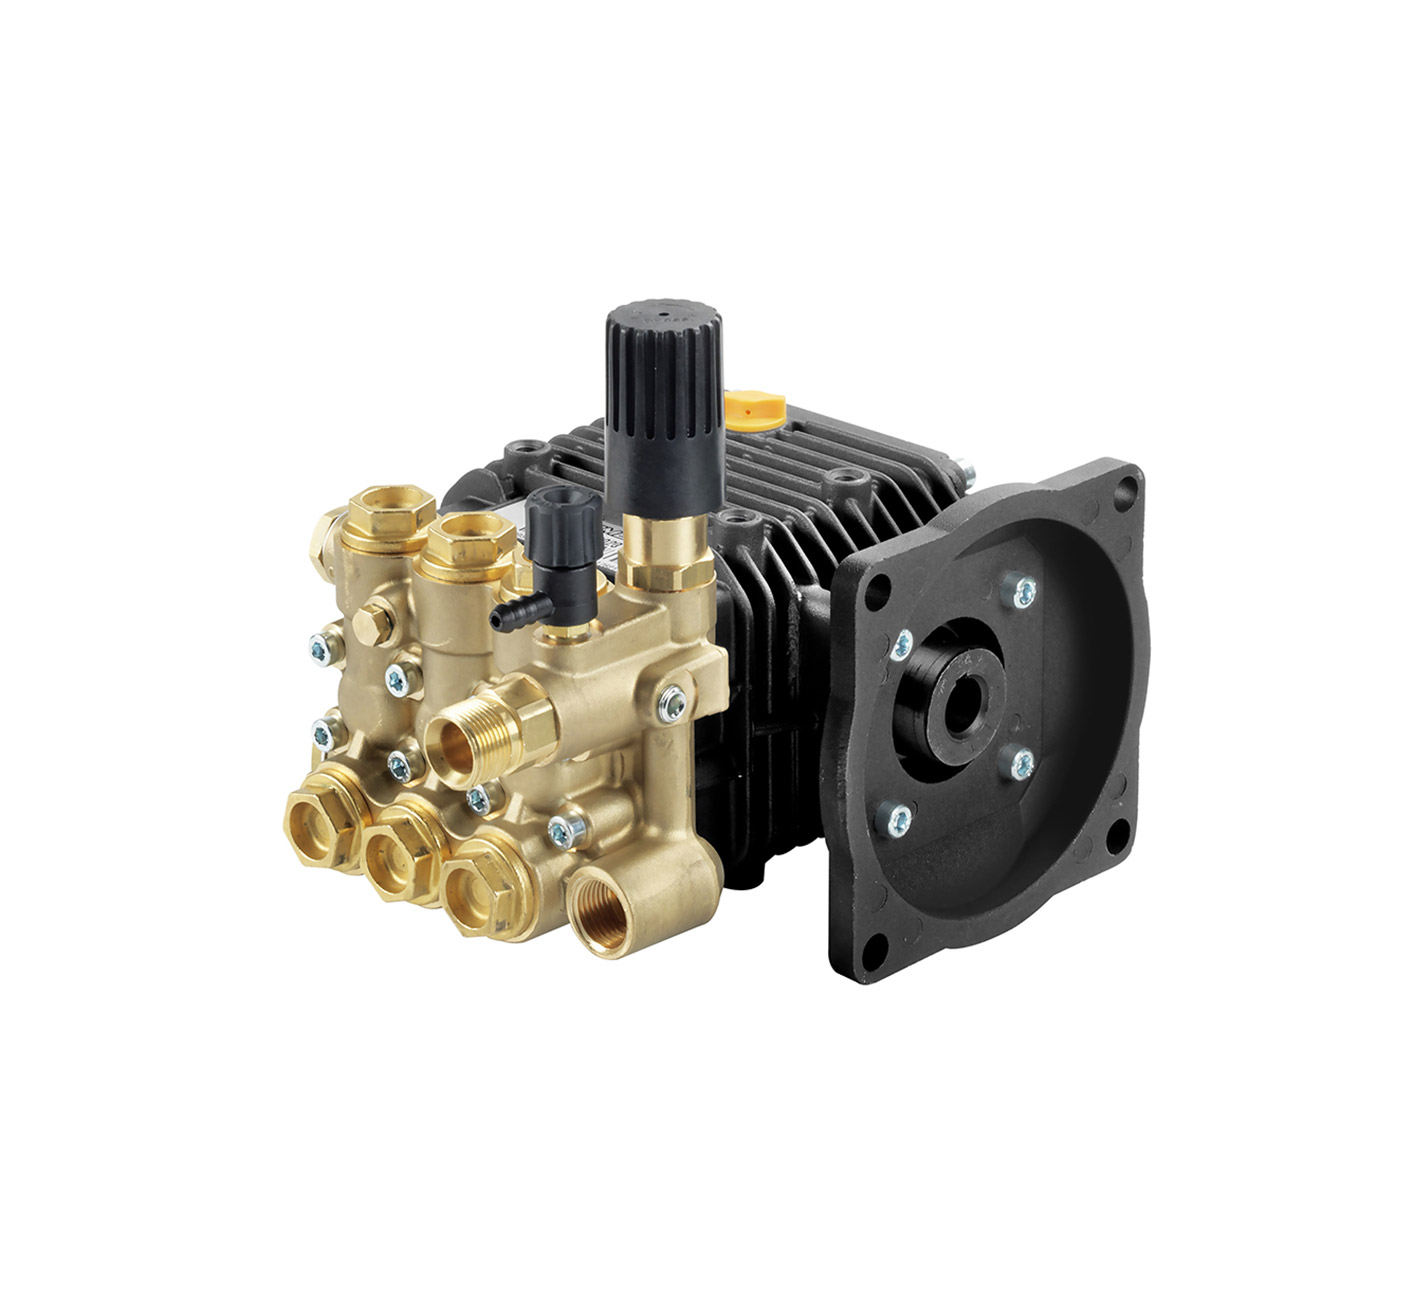 lwd-k 5/8 Comet Industrial Pumps